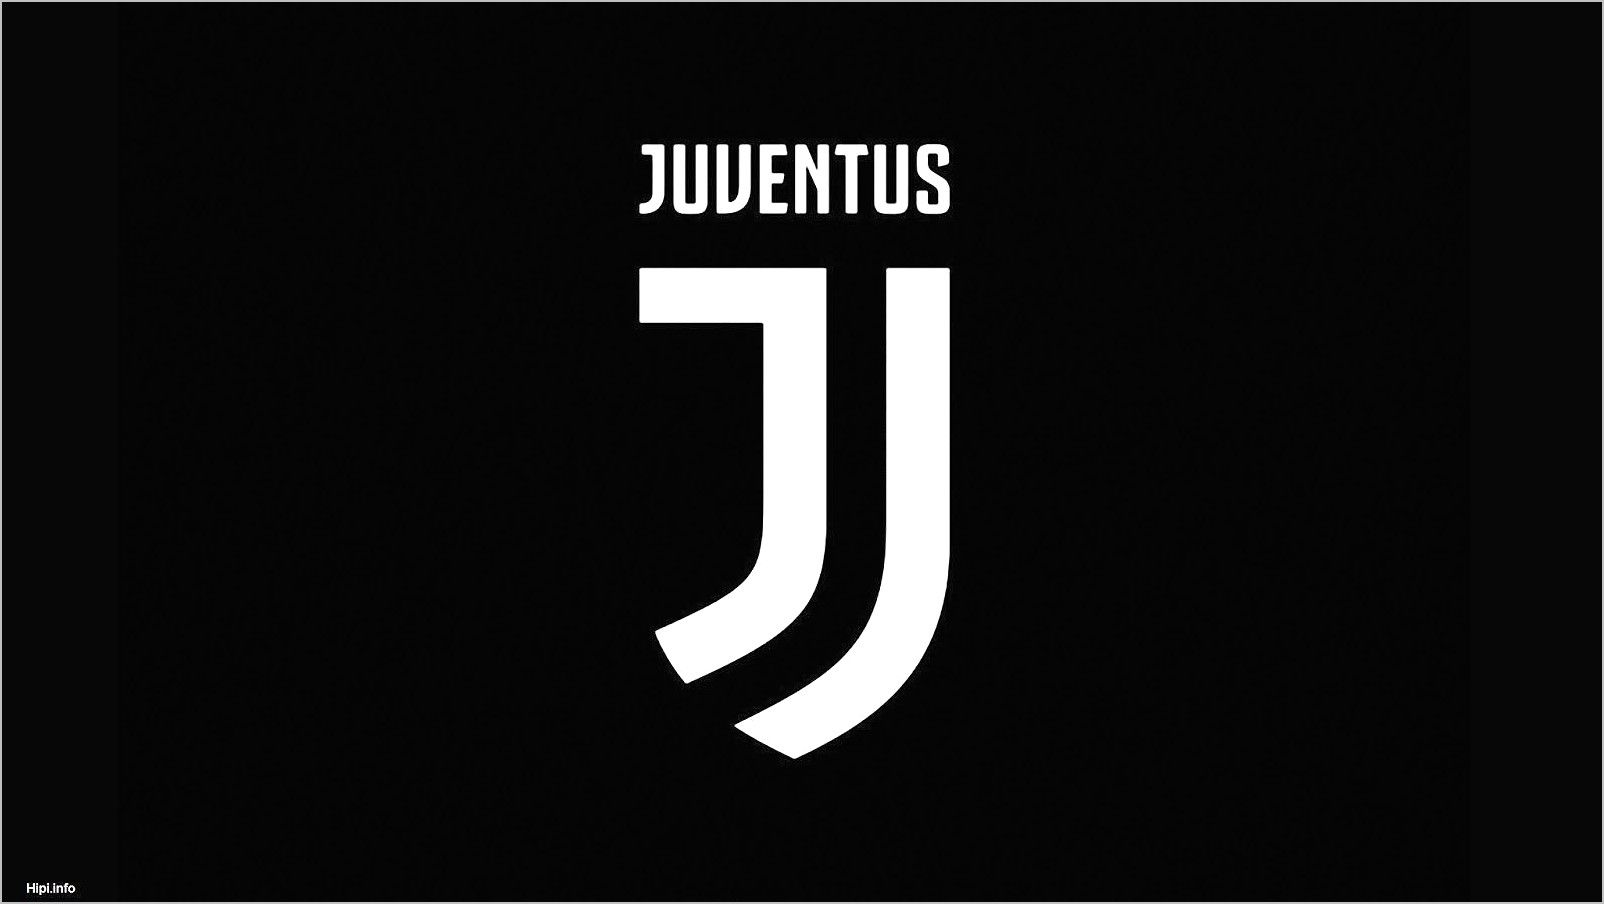 Juventus Wallpaper 4k Pc Juventus Wallpapers Juventus Ronaldo Wallpapers